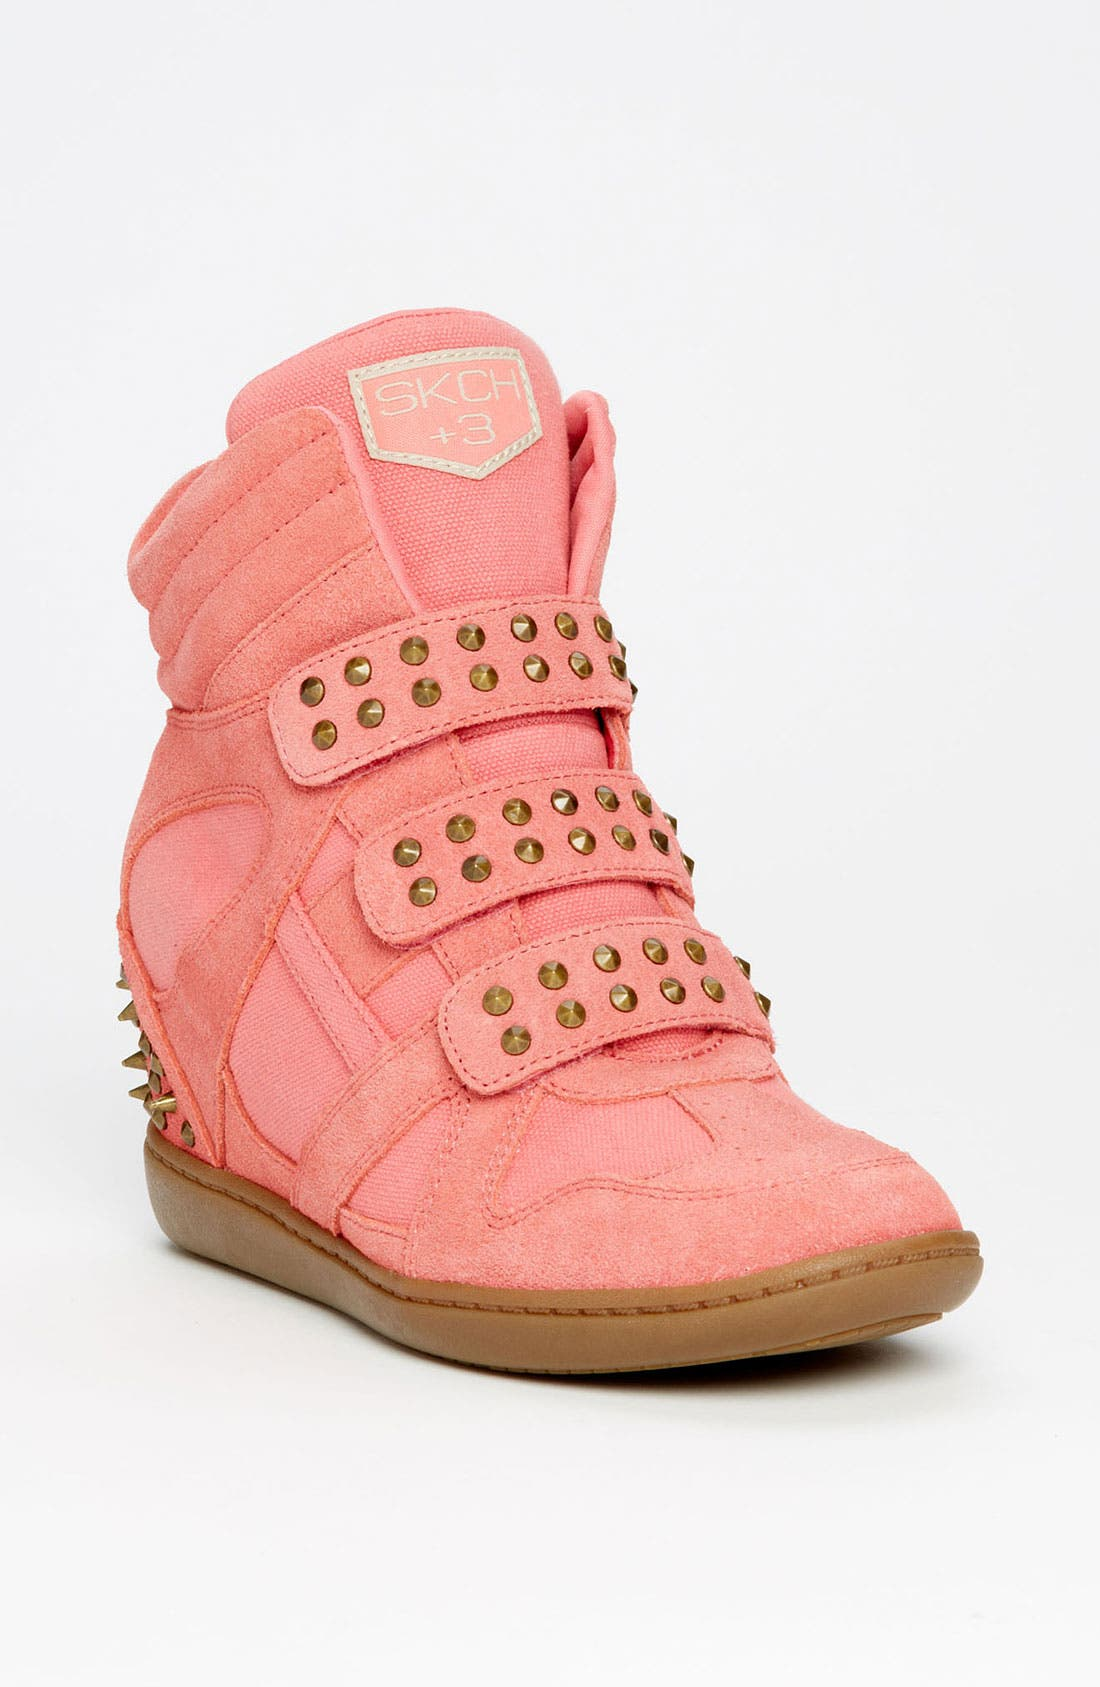 Main Image - SKECHERS 'Plus 3 - Staked' Wedge Sneaker (Women)